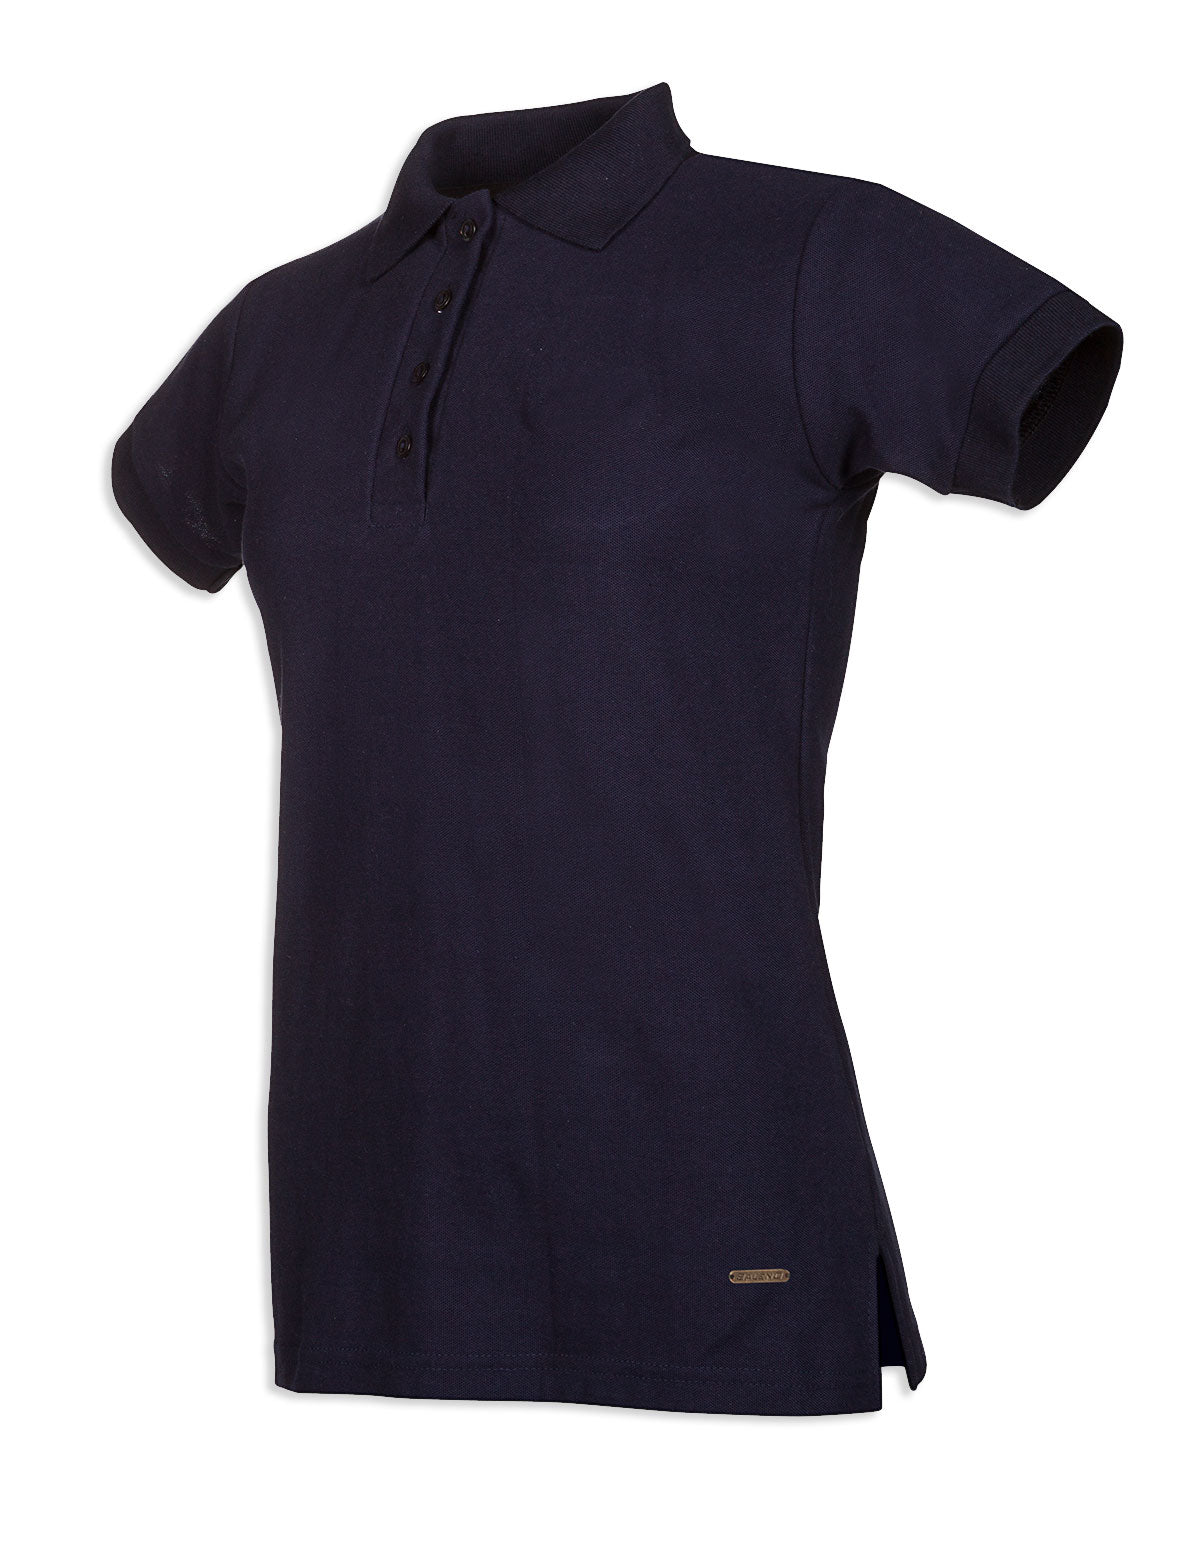 Baleno Steffi Ladies Polo Shirt